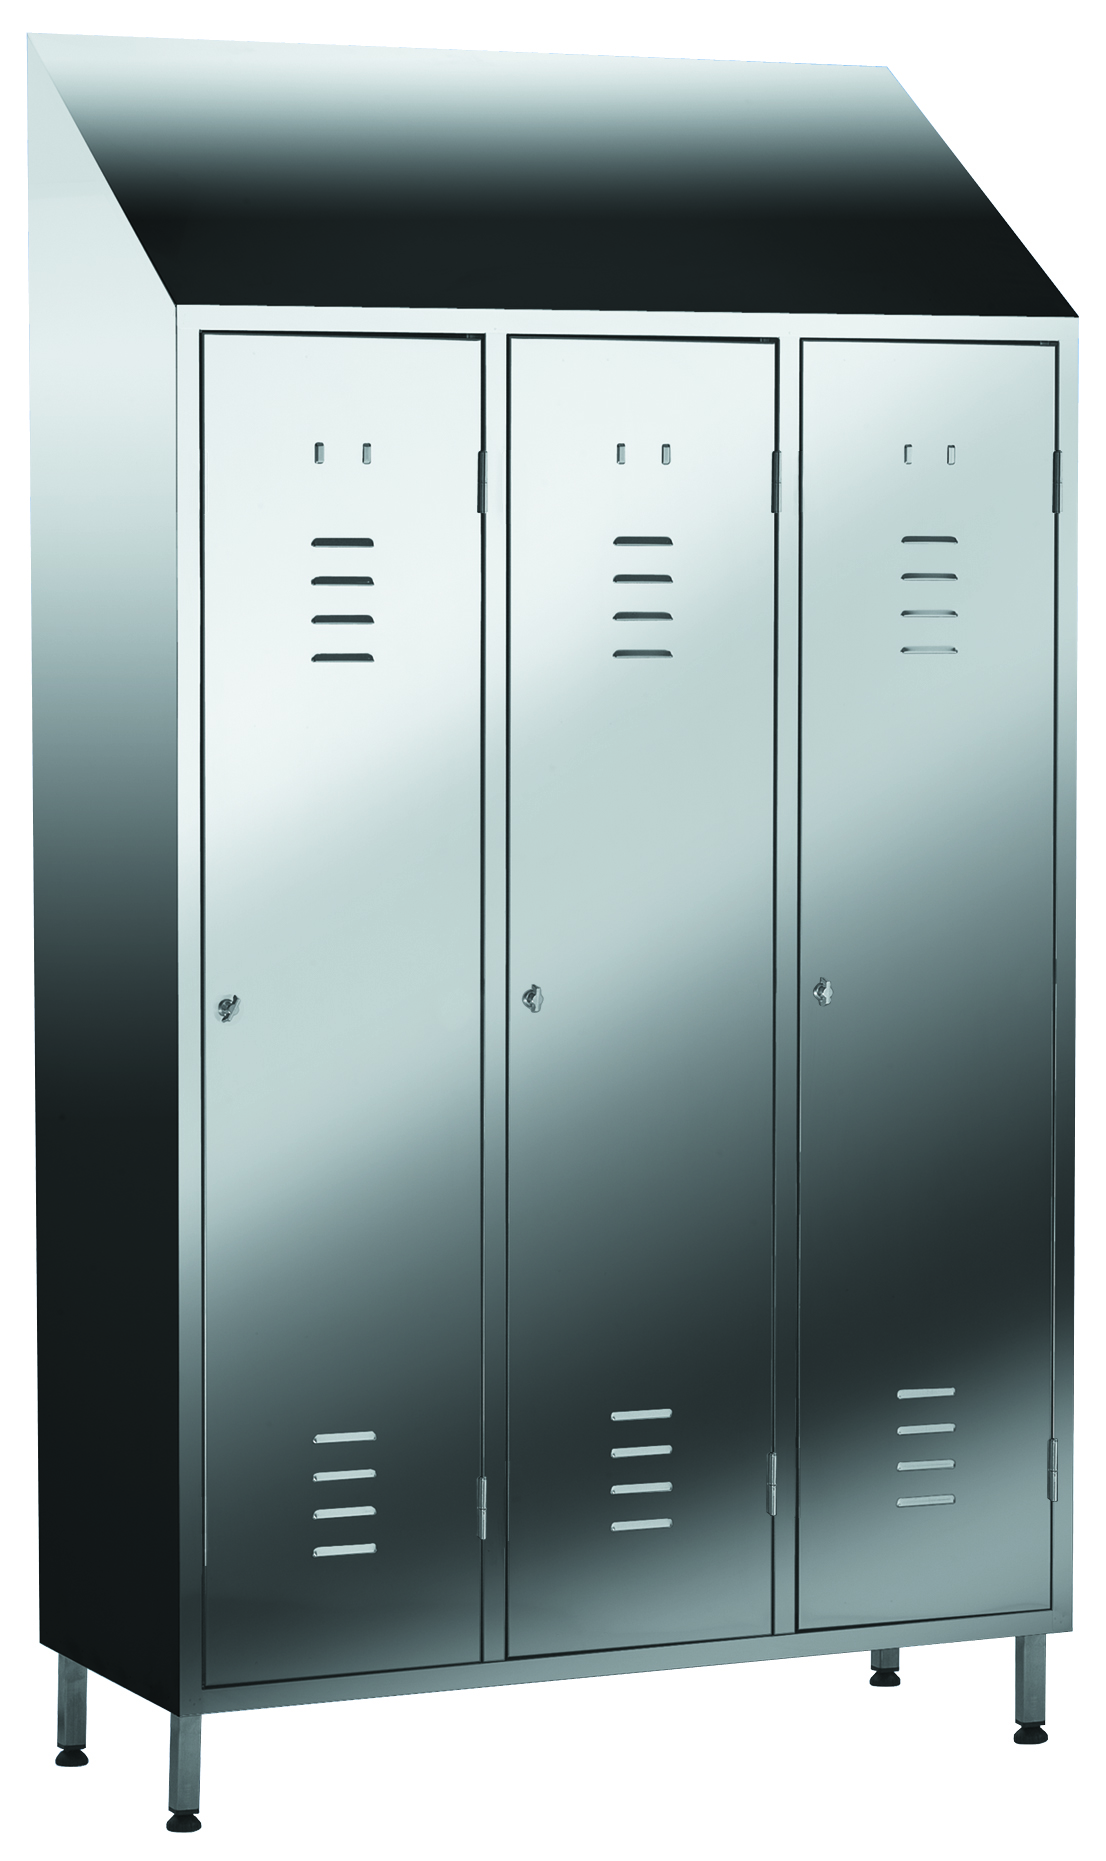 Stainless Steel Lockers By J Amp K Stainless Solutions Ltd